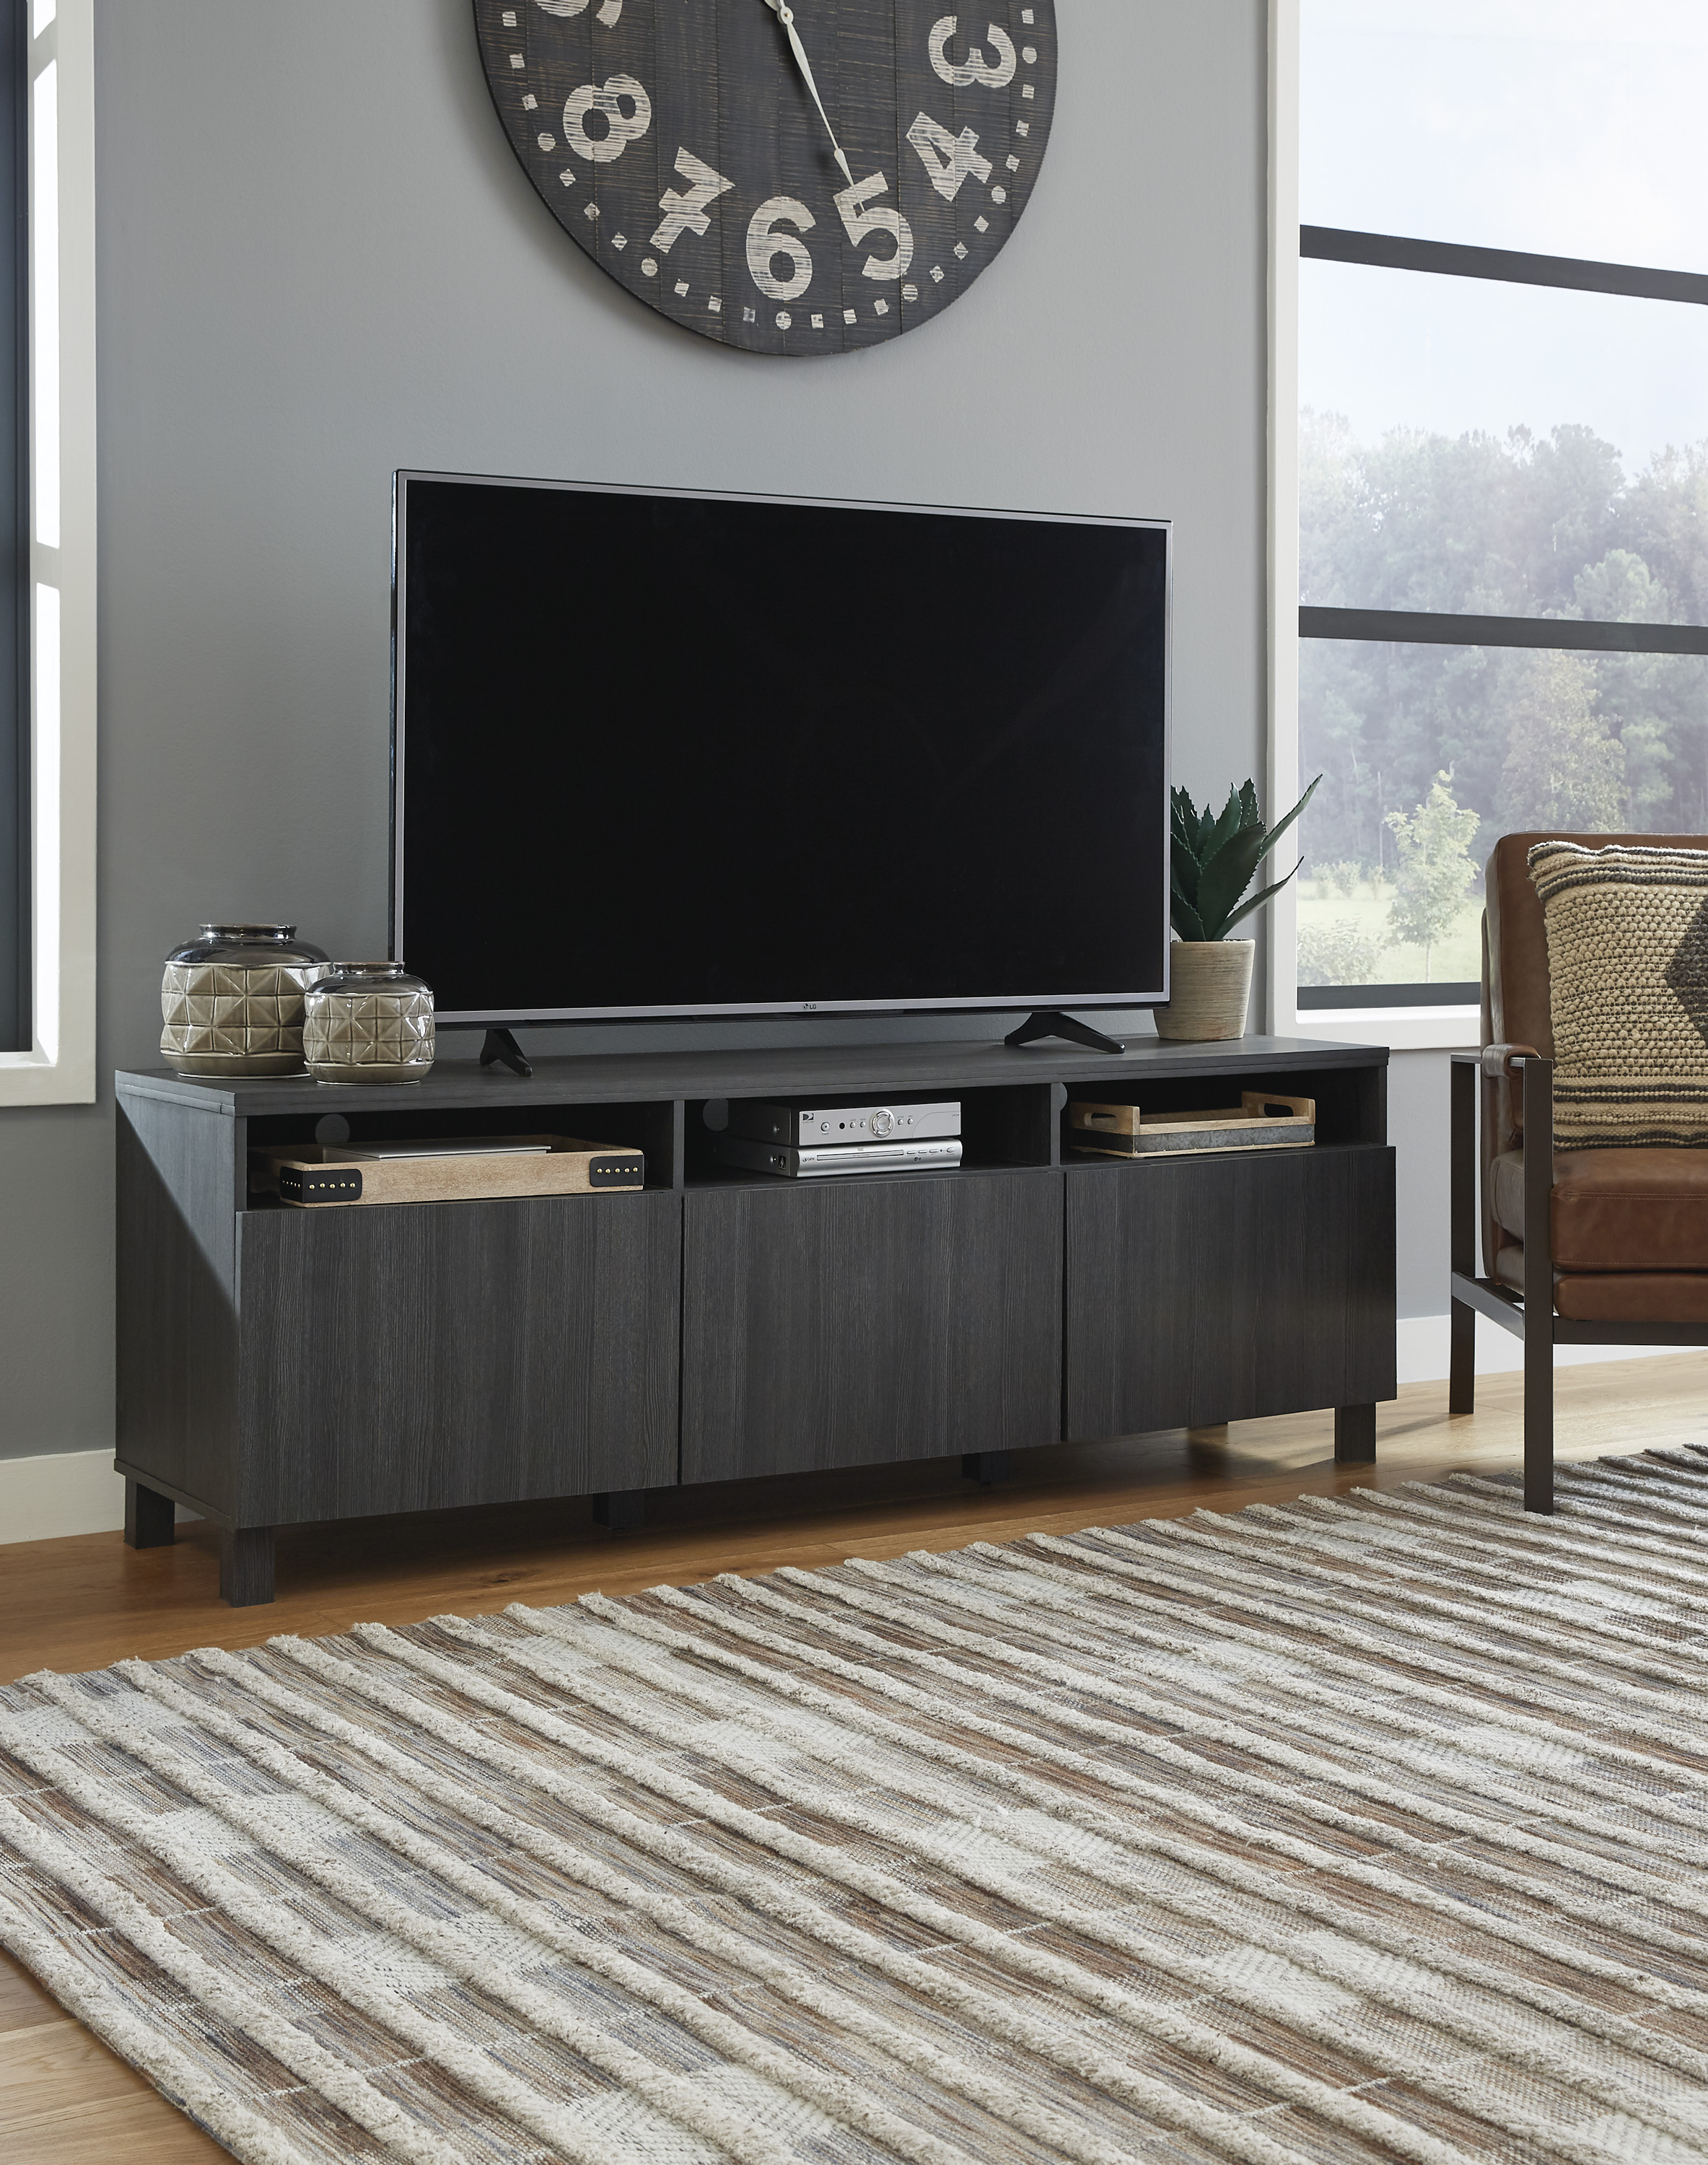 Ashley Furniture Yarlow W215-66 70 inch TV stand